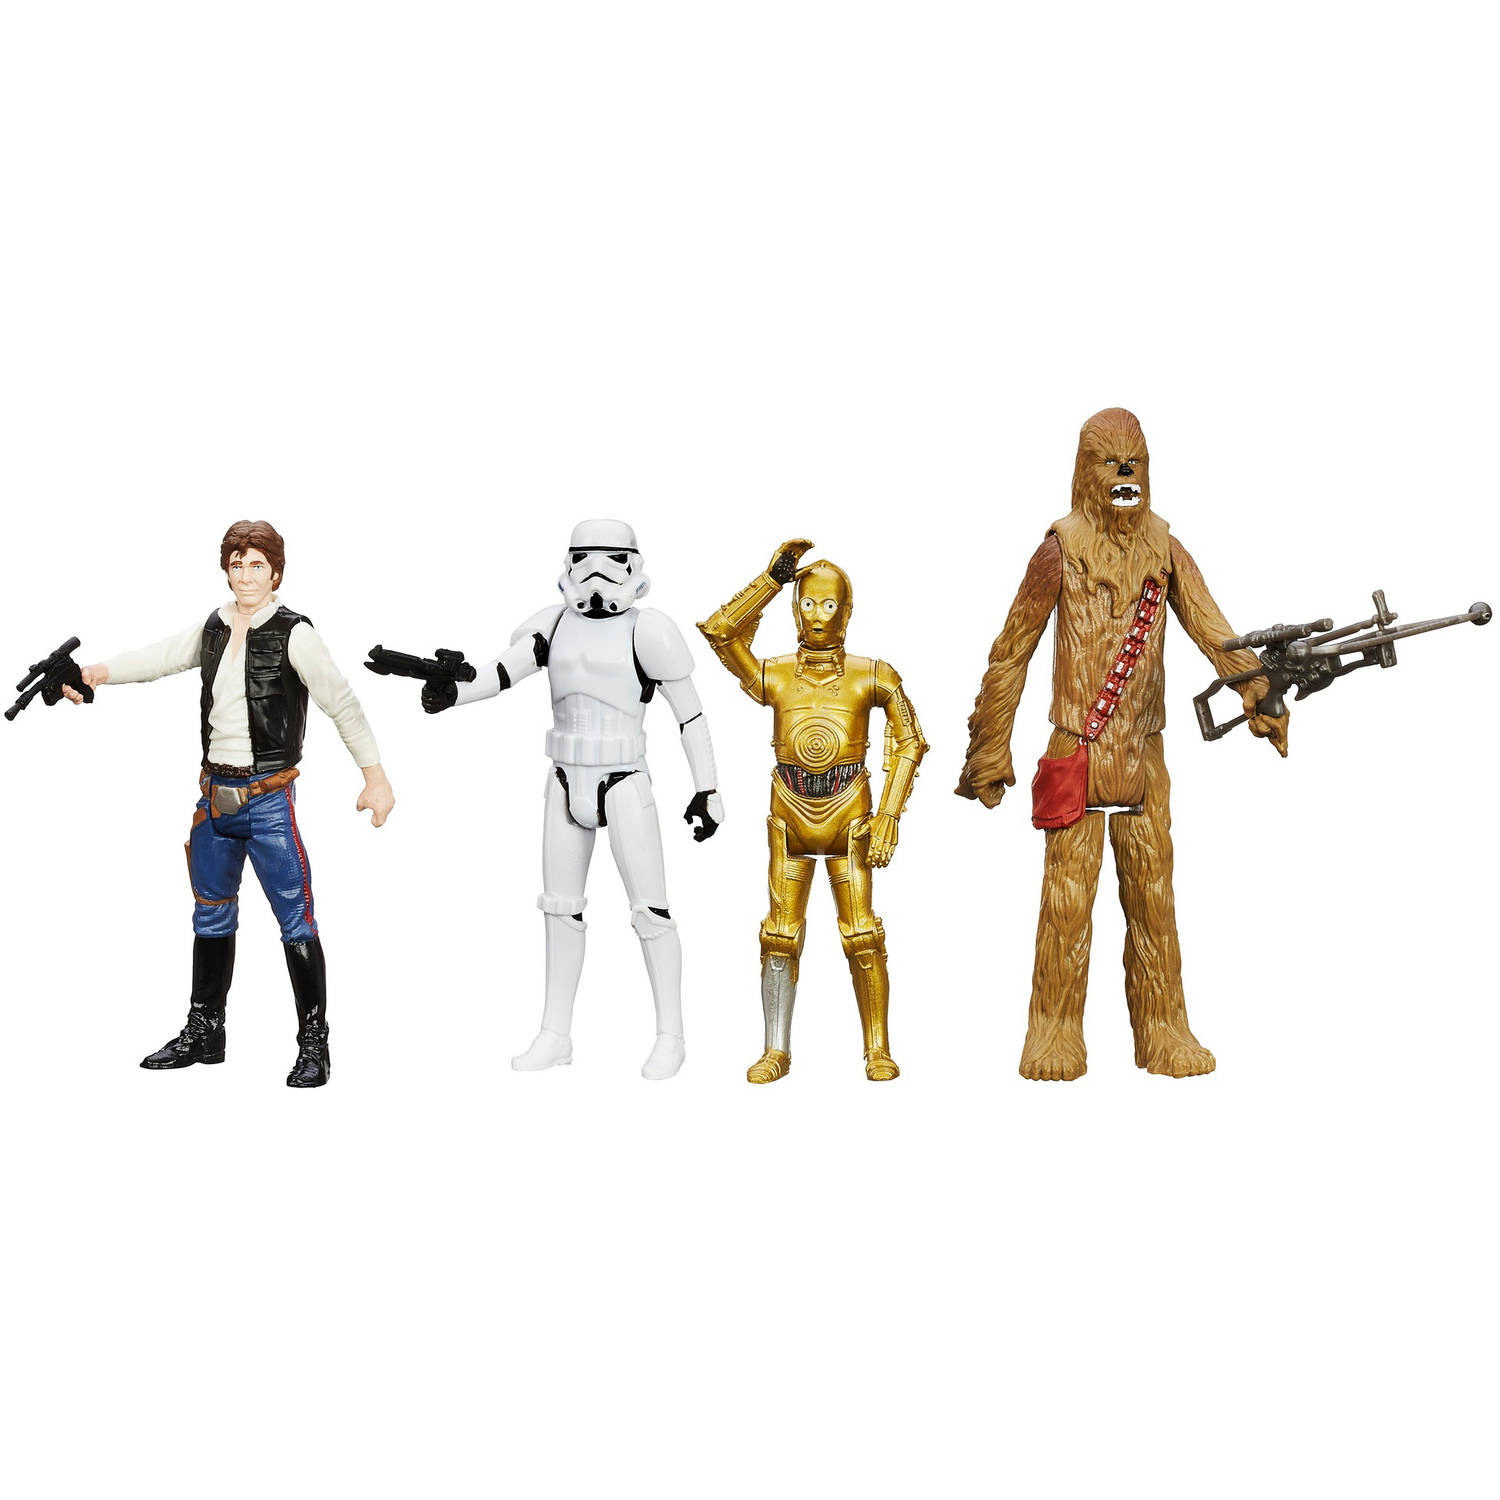 Star Wars Commemorative Collection Episode IV A New Hope by Hasbro